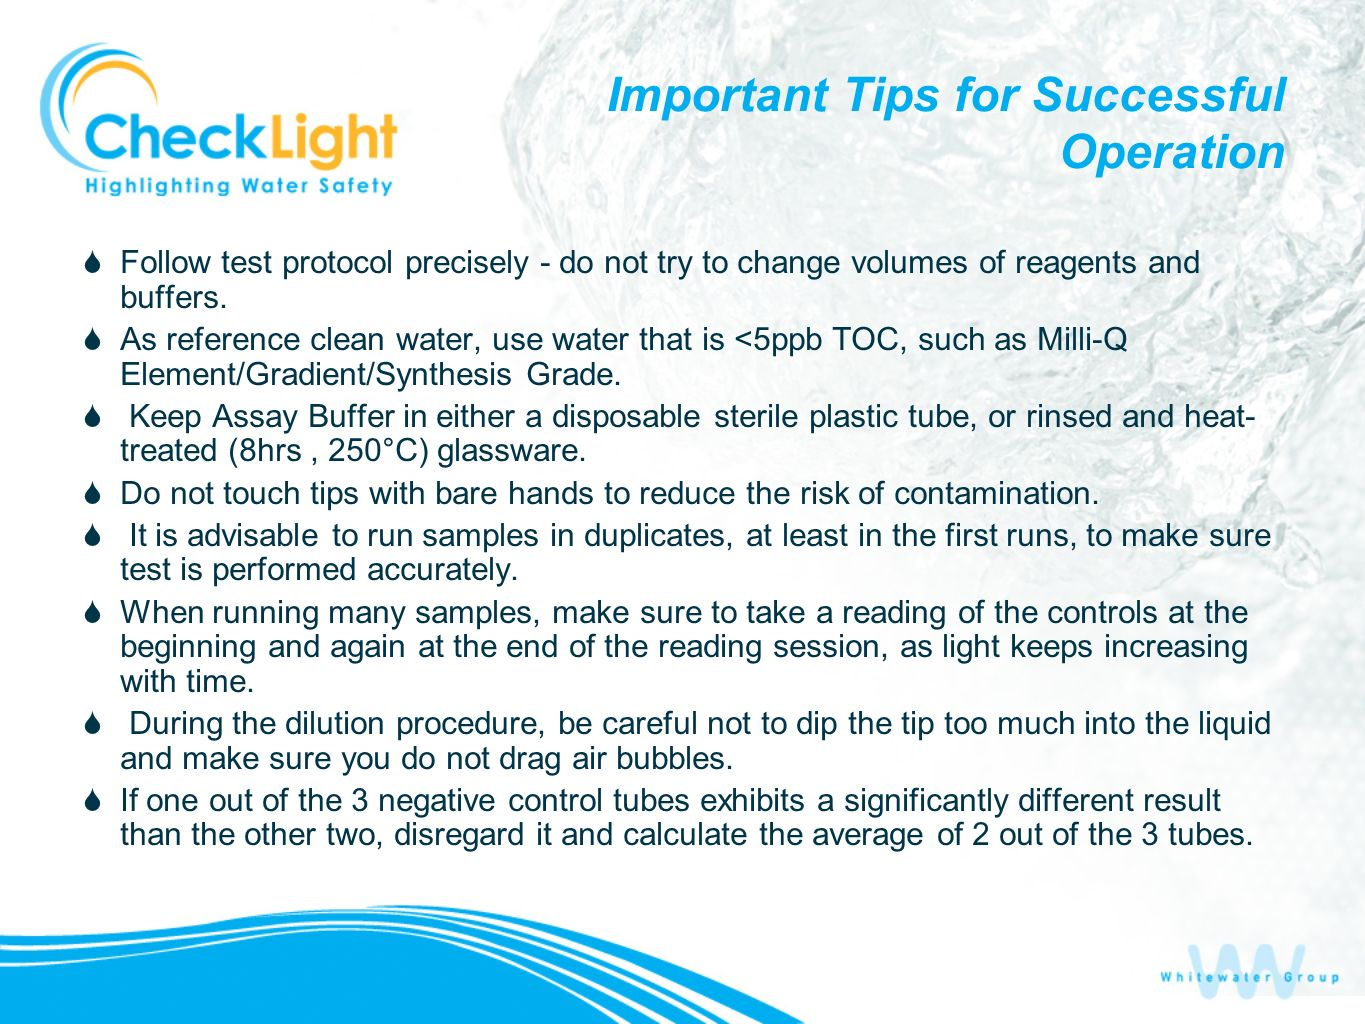 Important Tips for Successful Operation